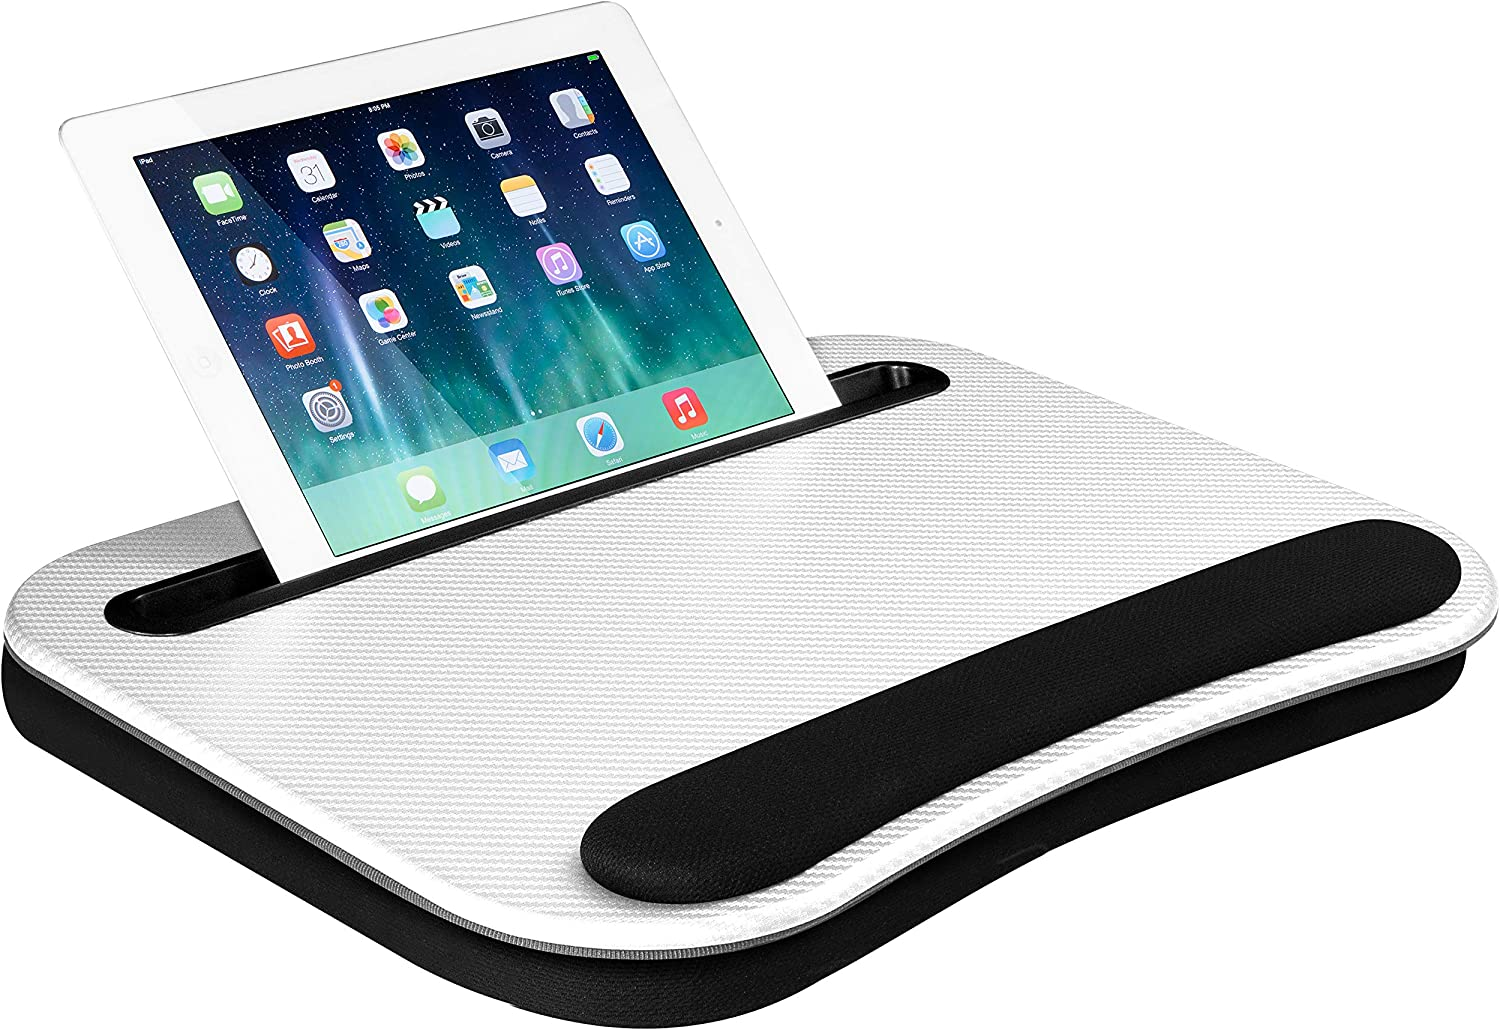 LapGear Smart-e Lap Desk - White Carbon - Fits up to 15.6 Inch laptops and Most Tablet Devices - Style No. 91334